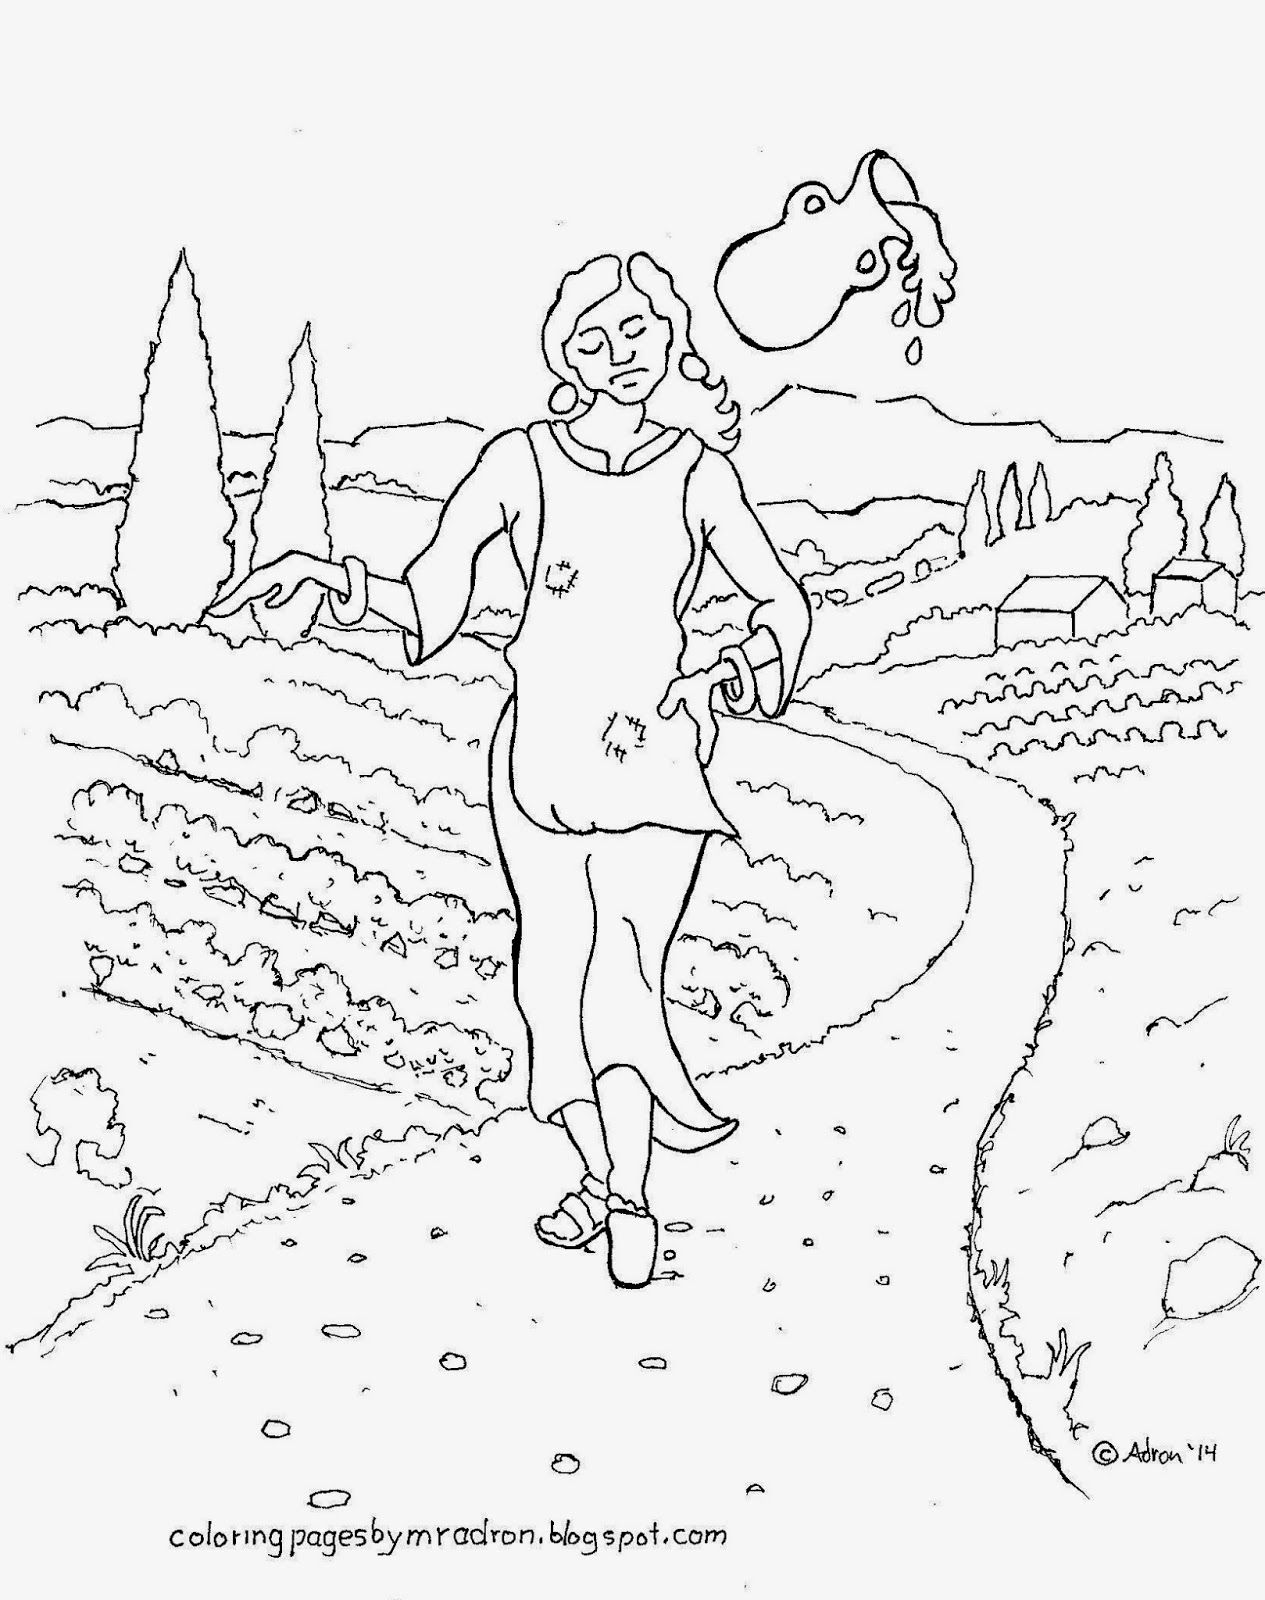 Coloring Pages For Kids By Mr Adron Aesop S Fable Coloring Page The Milk Maid Don T Count Your Eggs Coloring Pages Bible Verse Coloring Page Aesops Fables